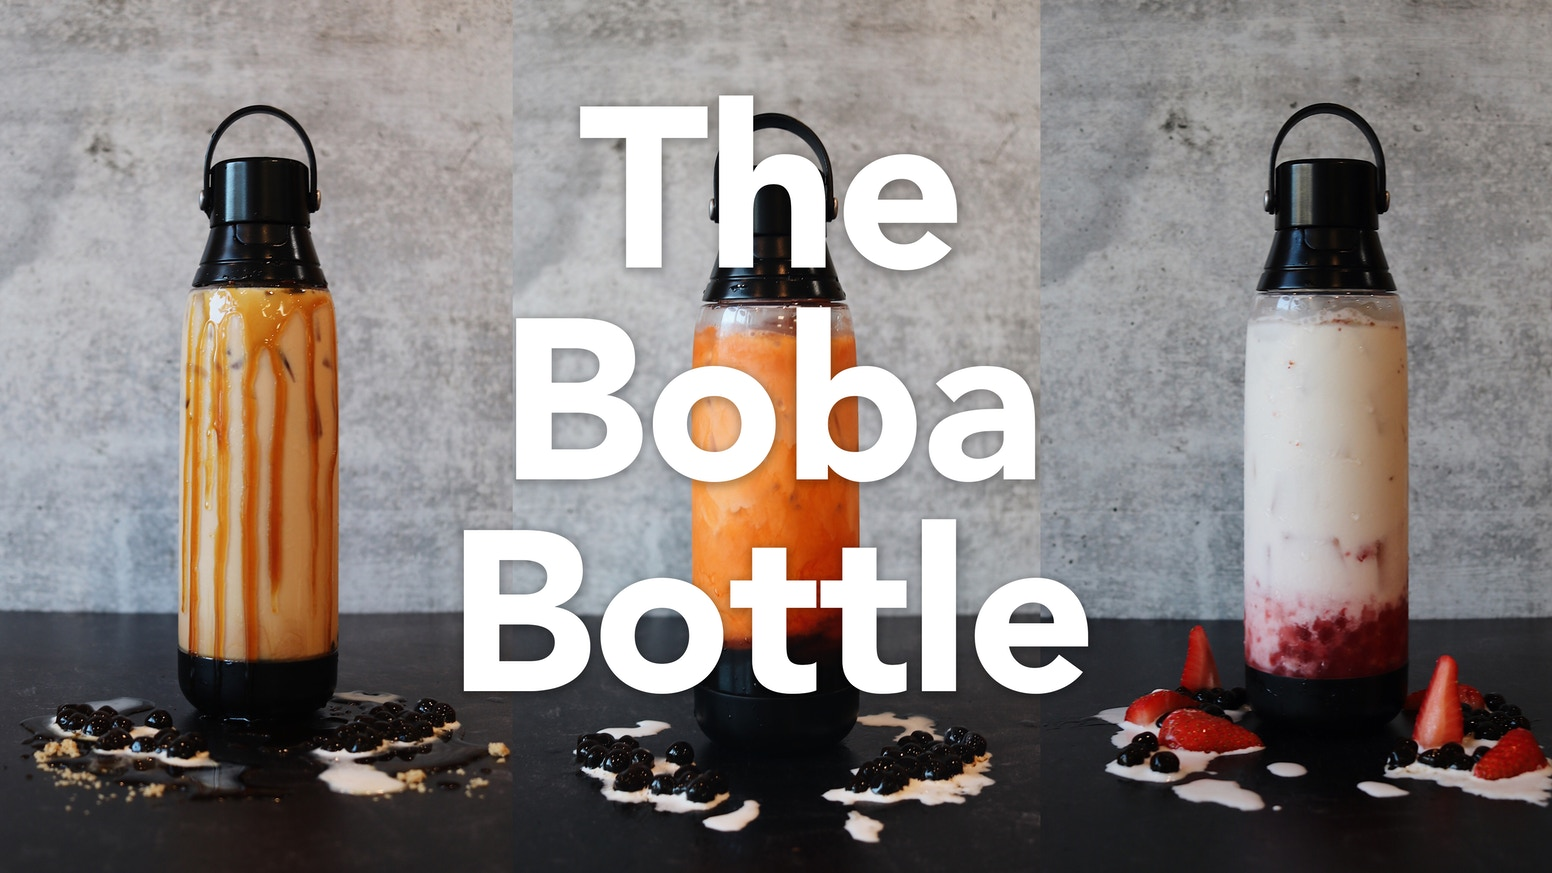 A spill-proof, hygienic, & shatter-resistant reusable boba cup designed for your convenience. Choose #sustainaboba.